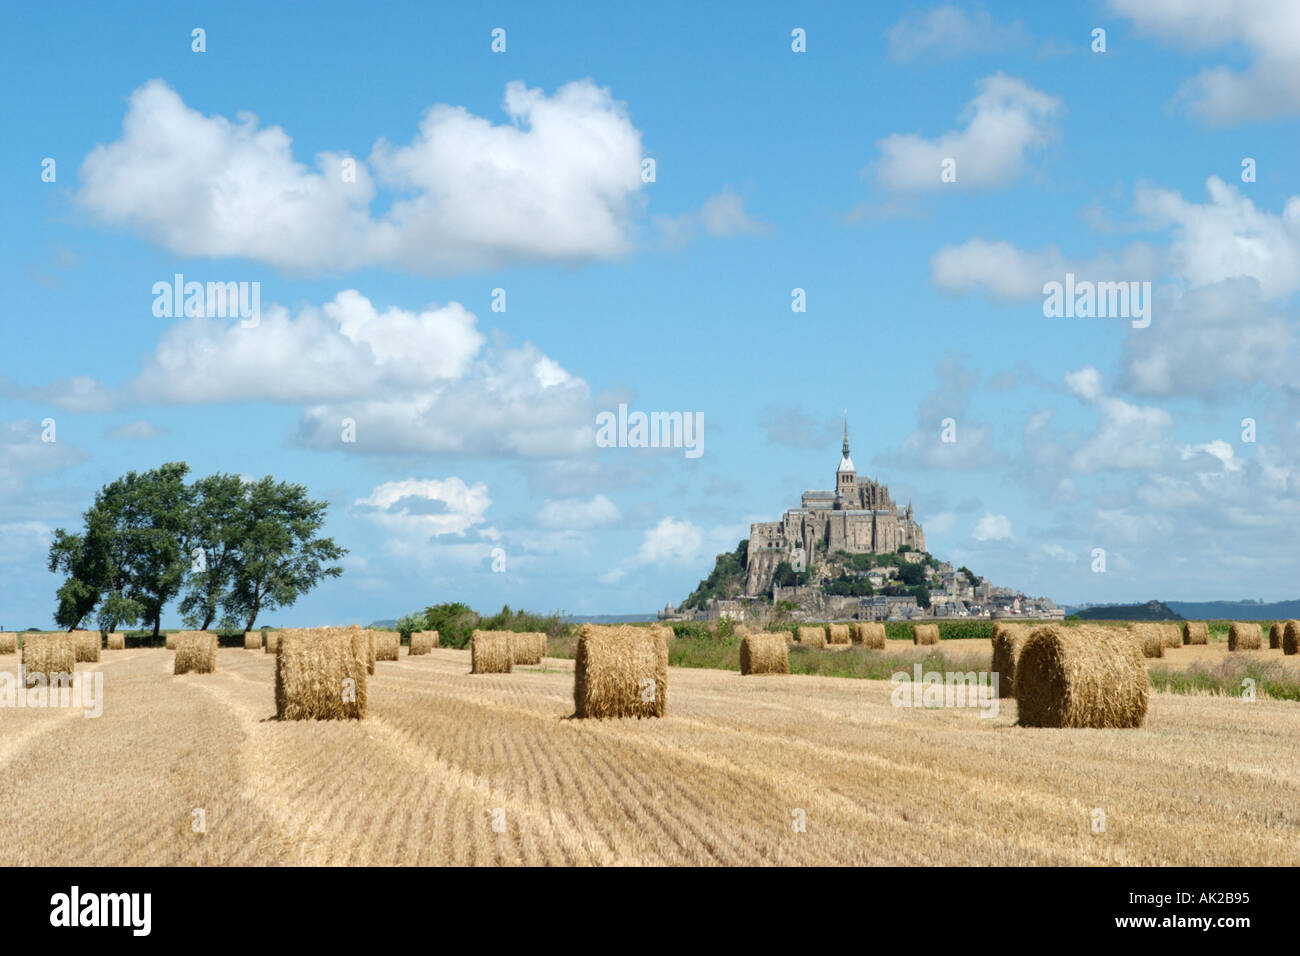 View of Mont Saint-Michel across newly harvested fields, Normandy, France - Stock Image